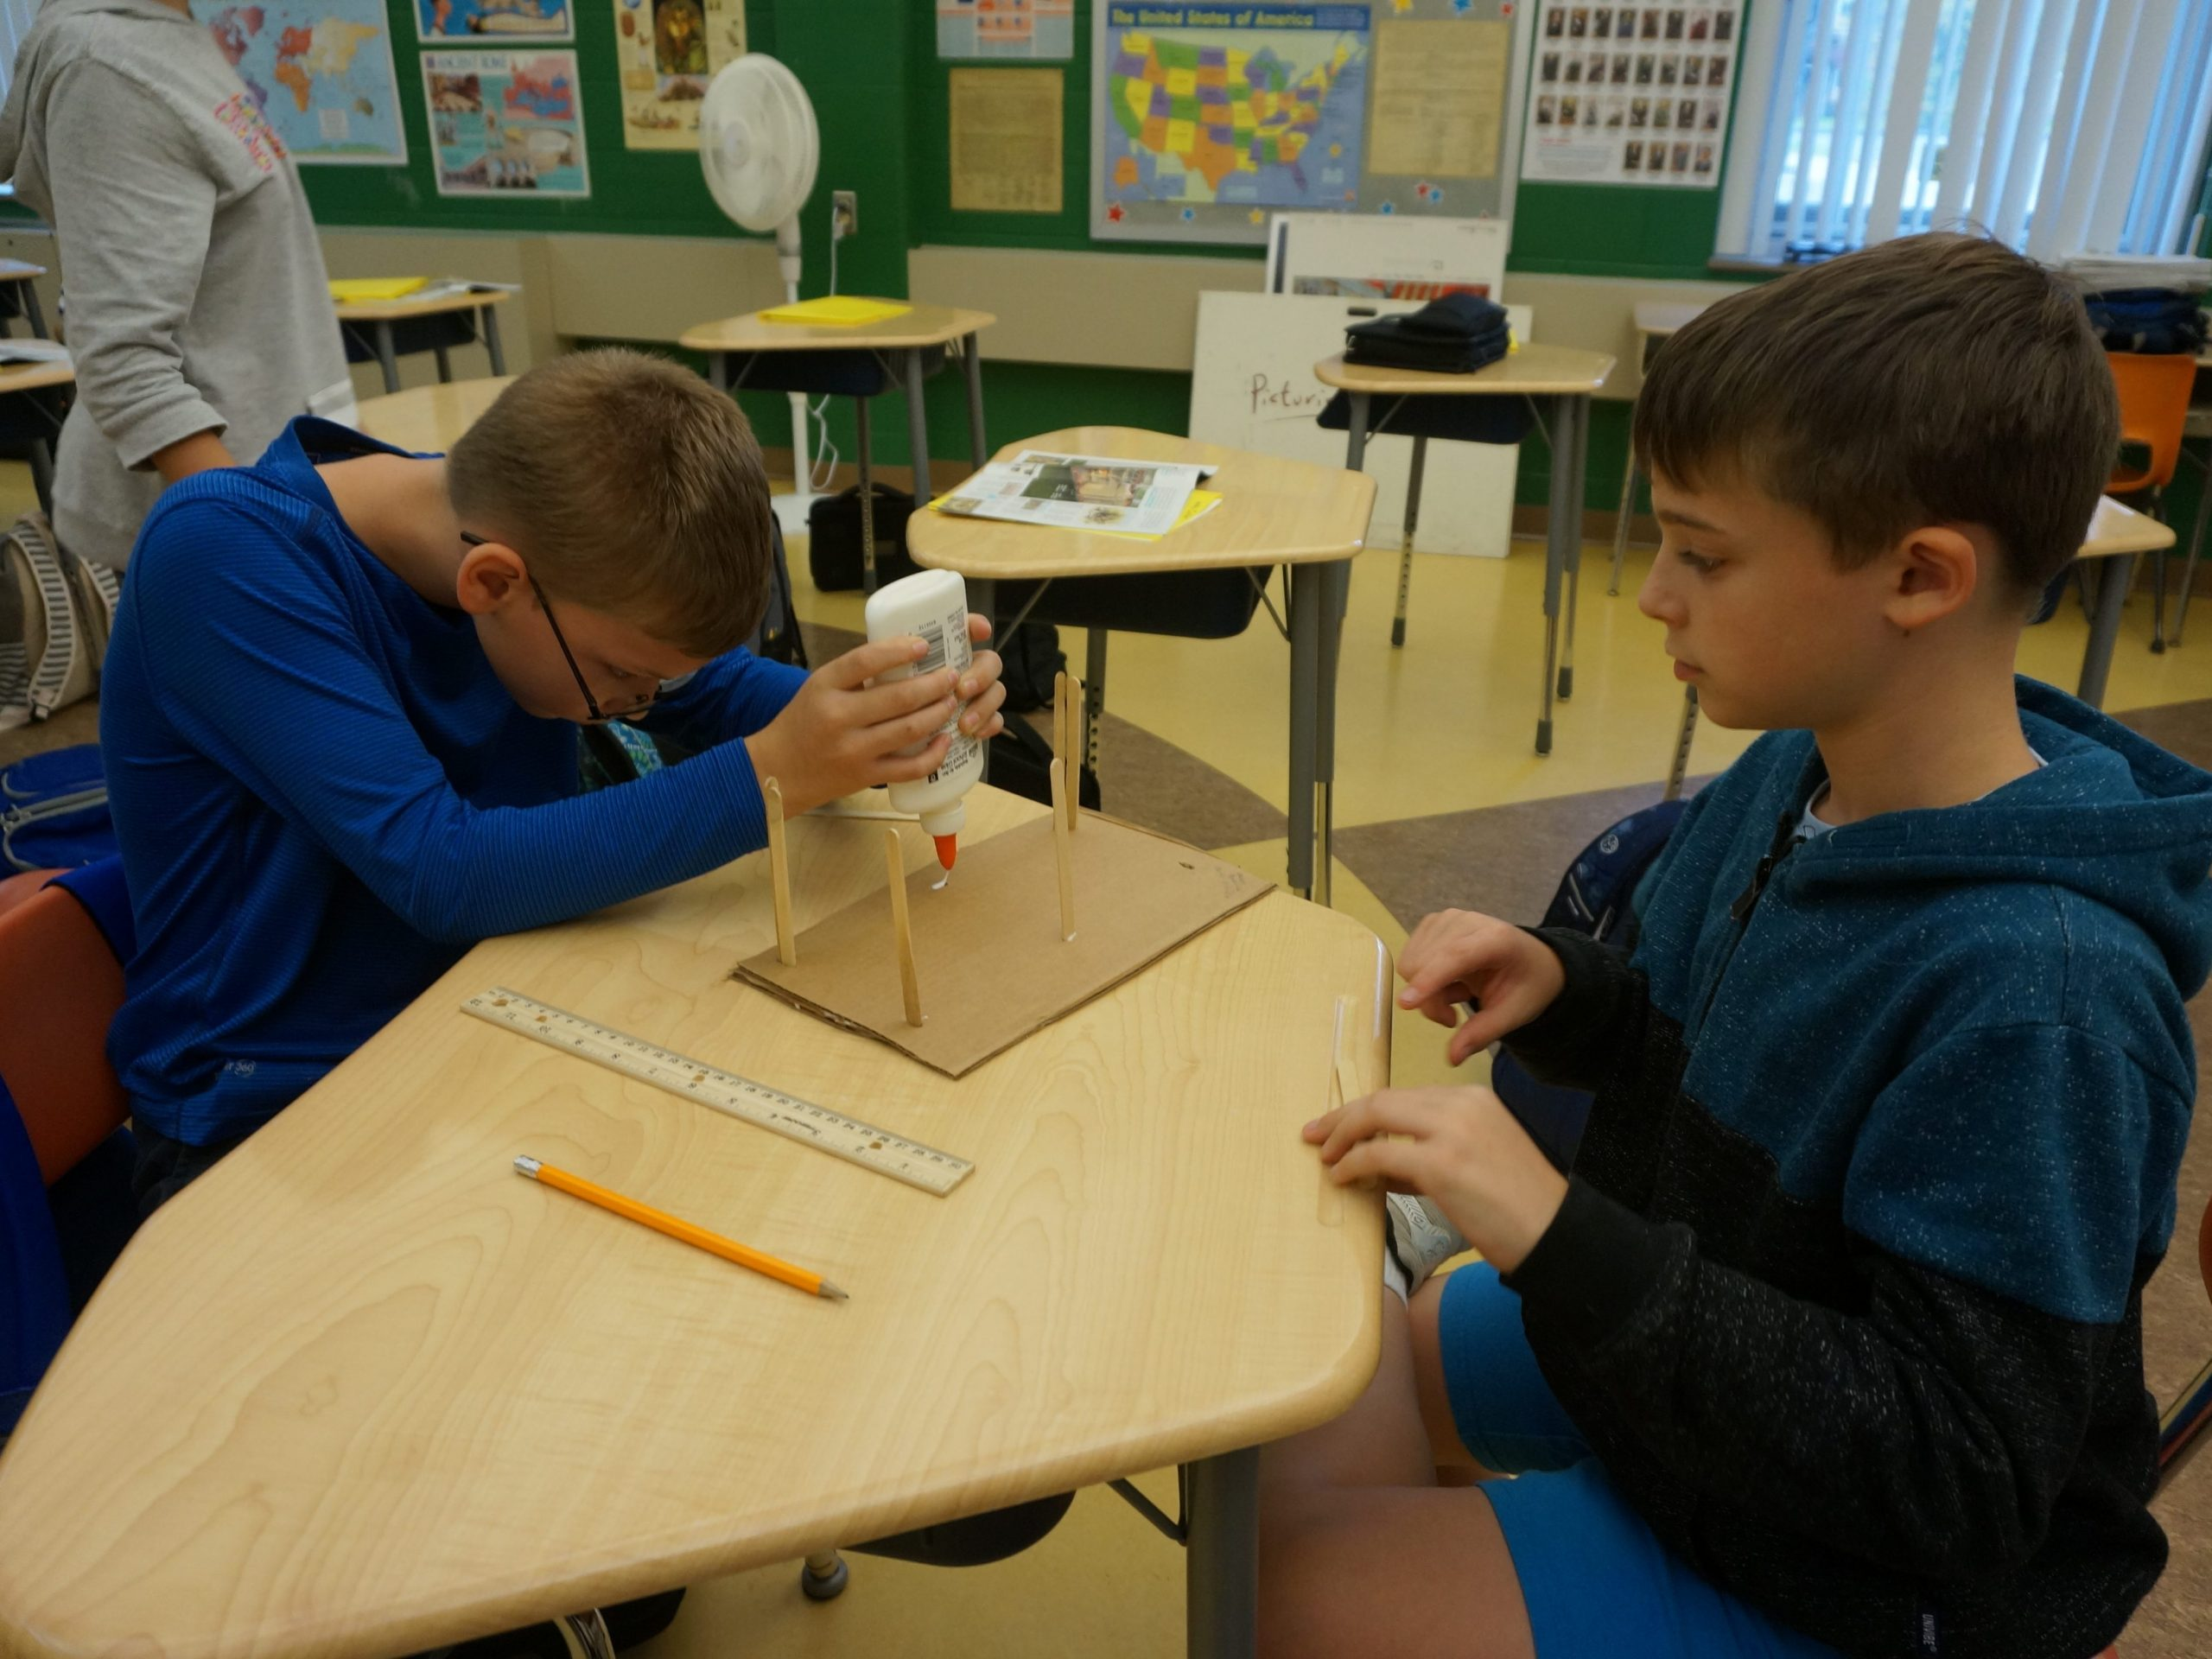 AuSable Forks Elementary School students